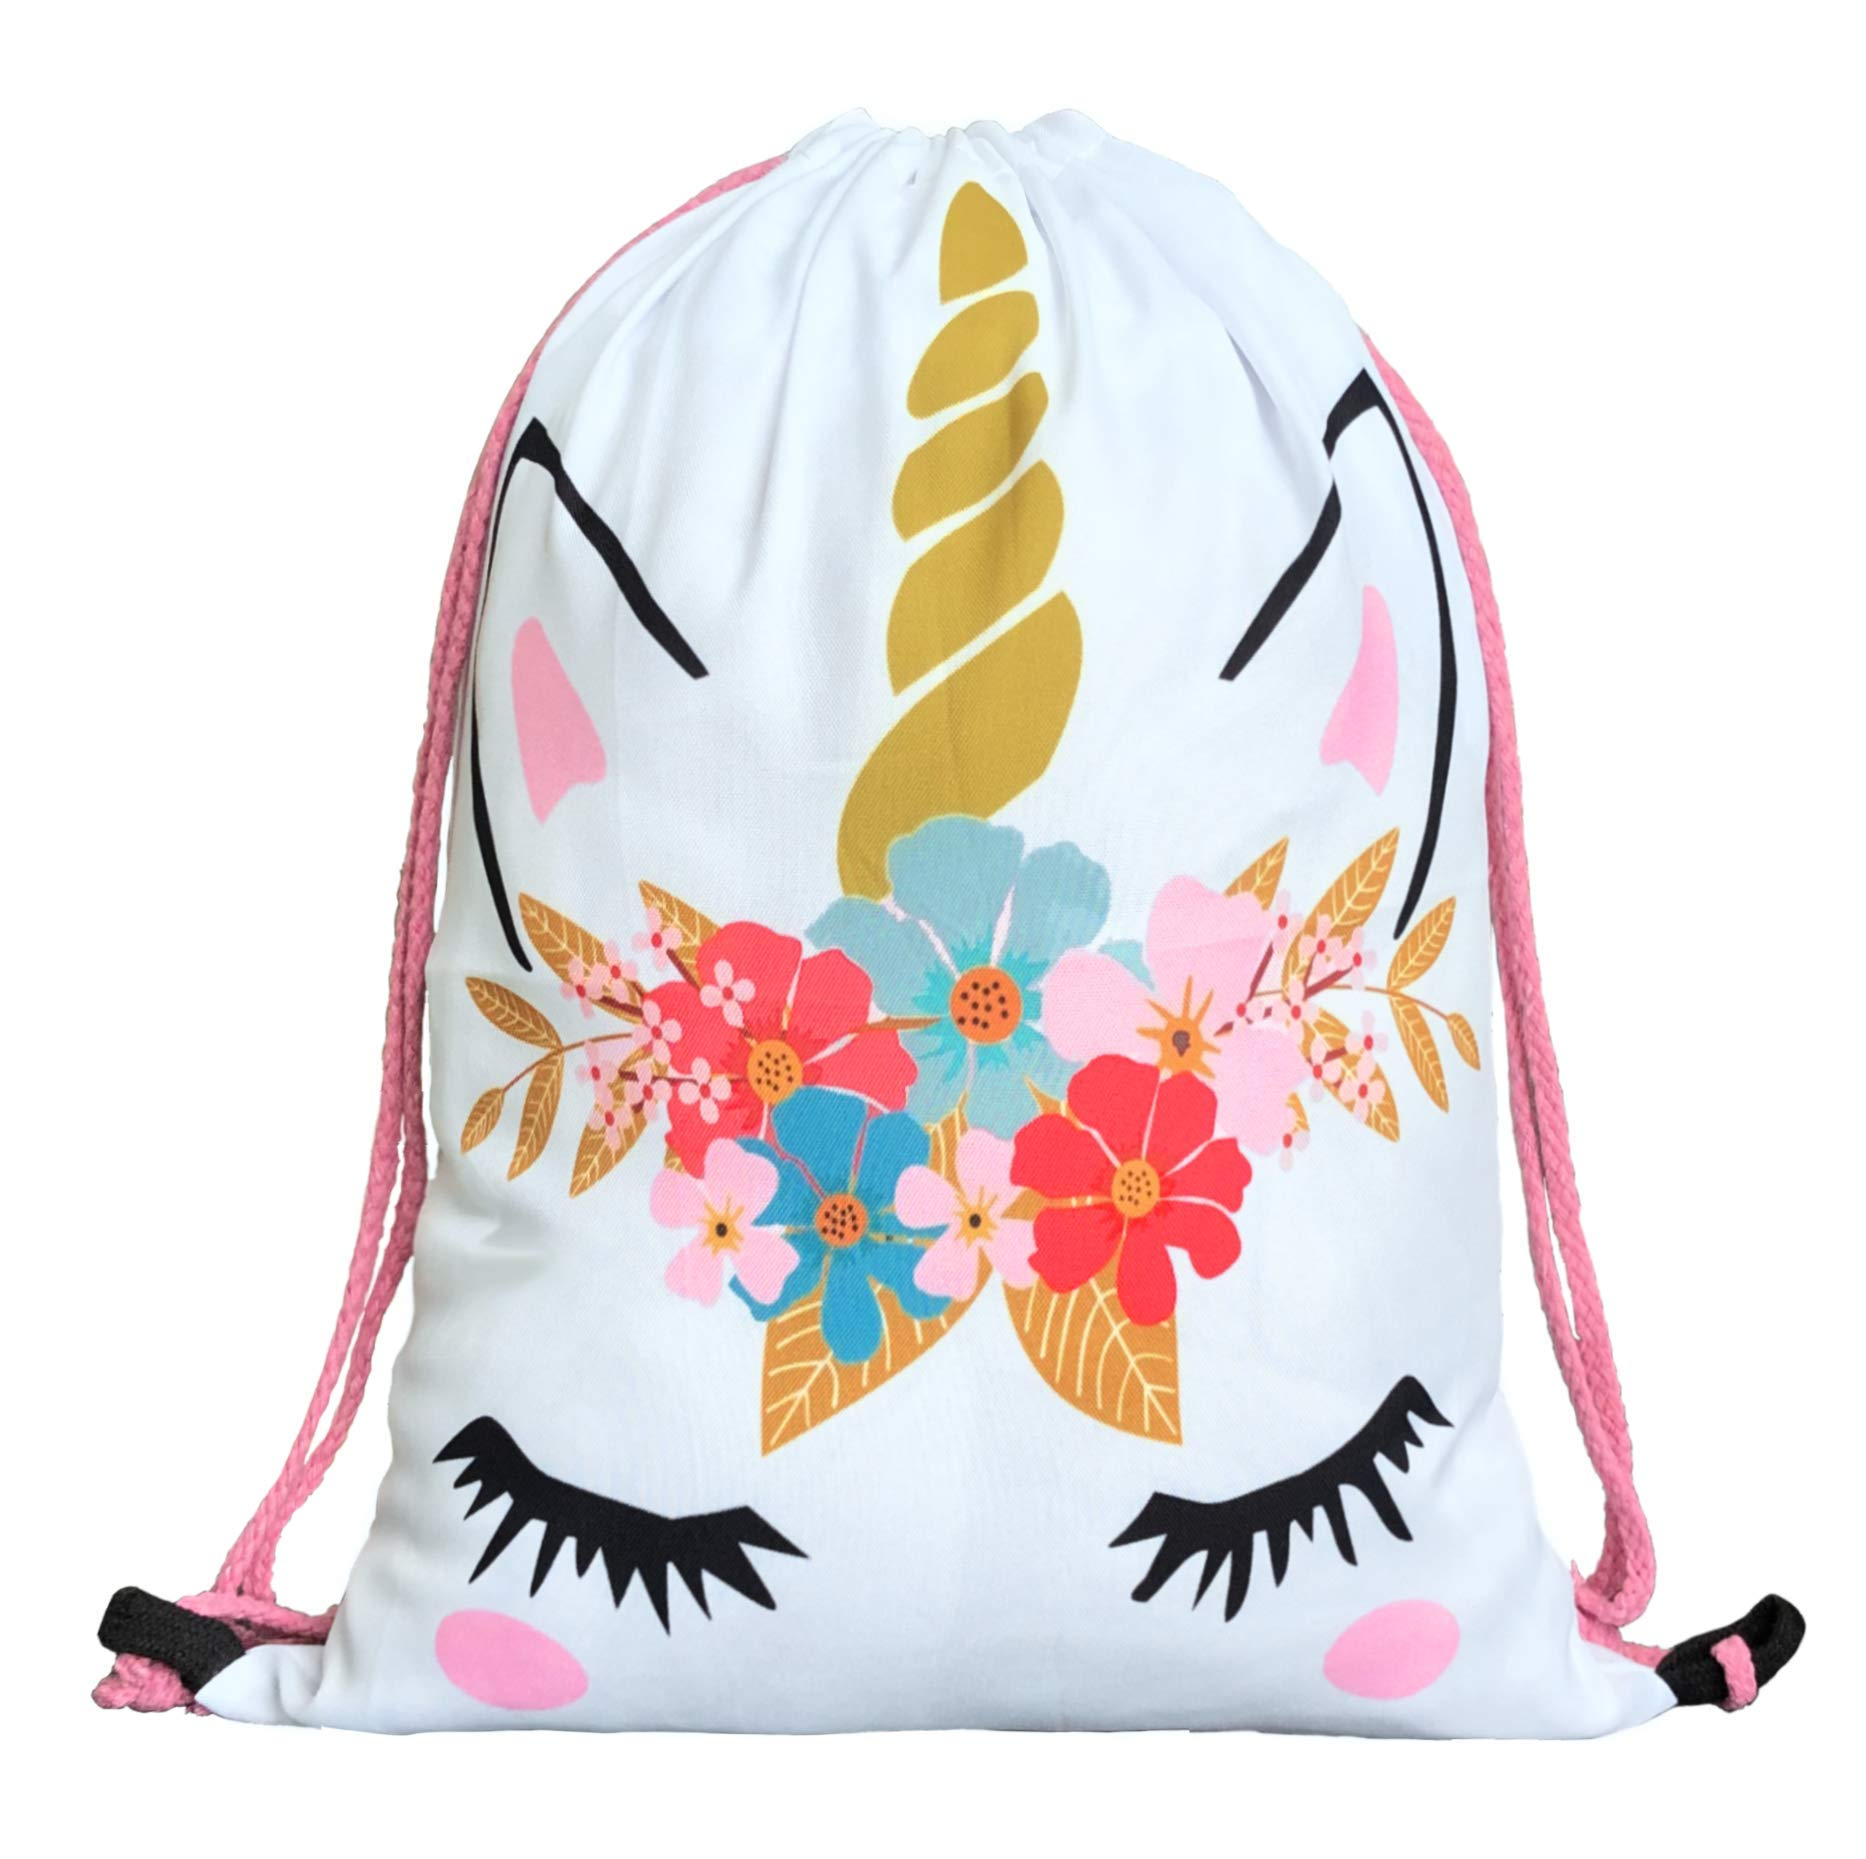 Unicorn Gifts for Girls – Unicorn Drawstring Backpack/Makeup Bag/Bracelet/Inspirational Necklace/Hair Ties